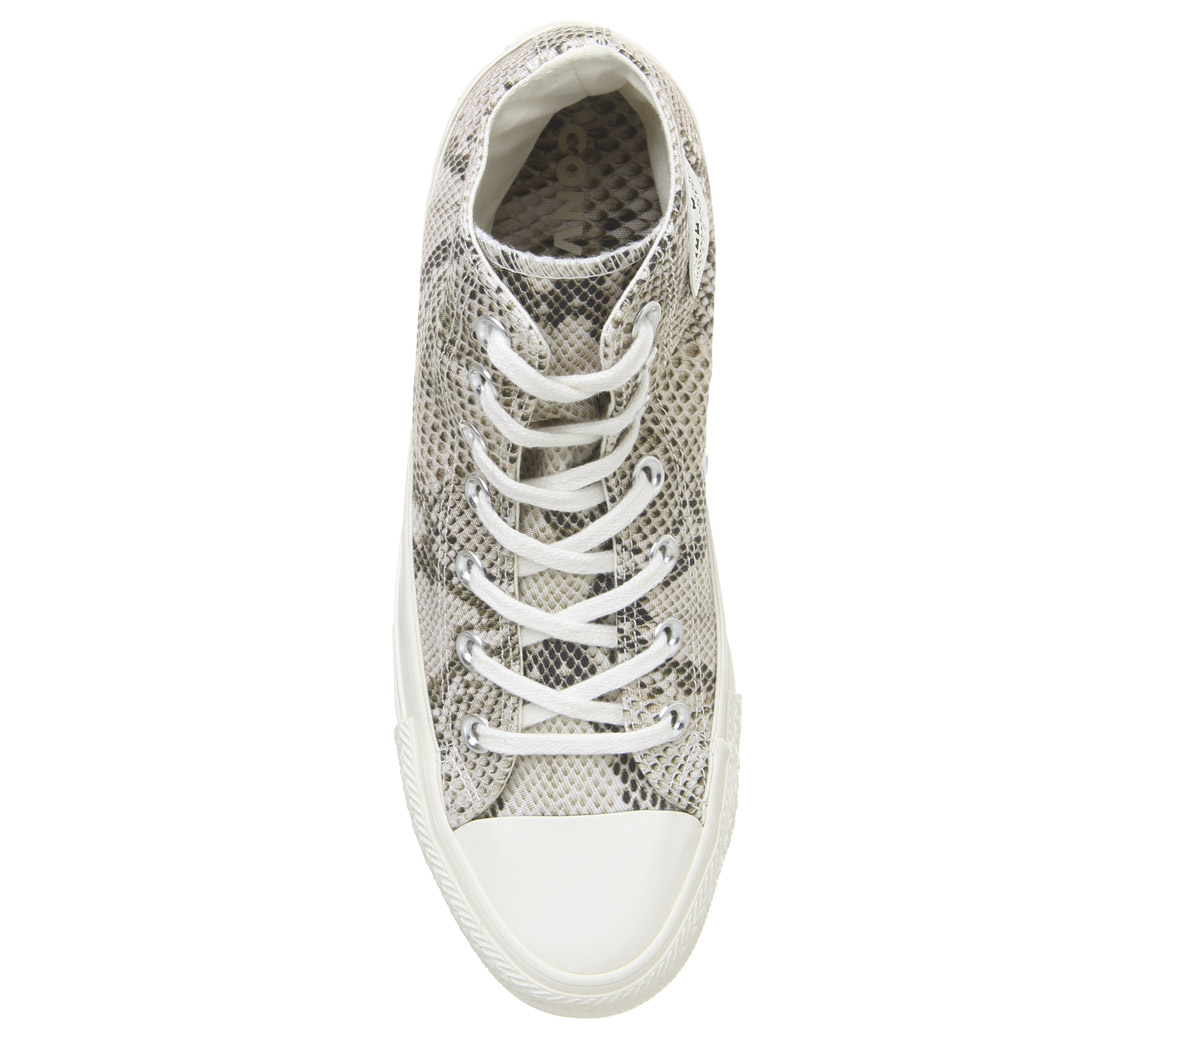 Womens-Converse-Converse-All-Star-Hi-Trainers-Egret-Black-Snake-Trainers-Shoes thumbnail 4